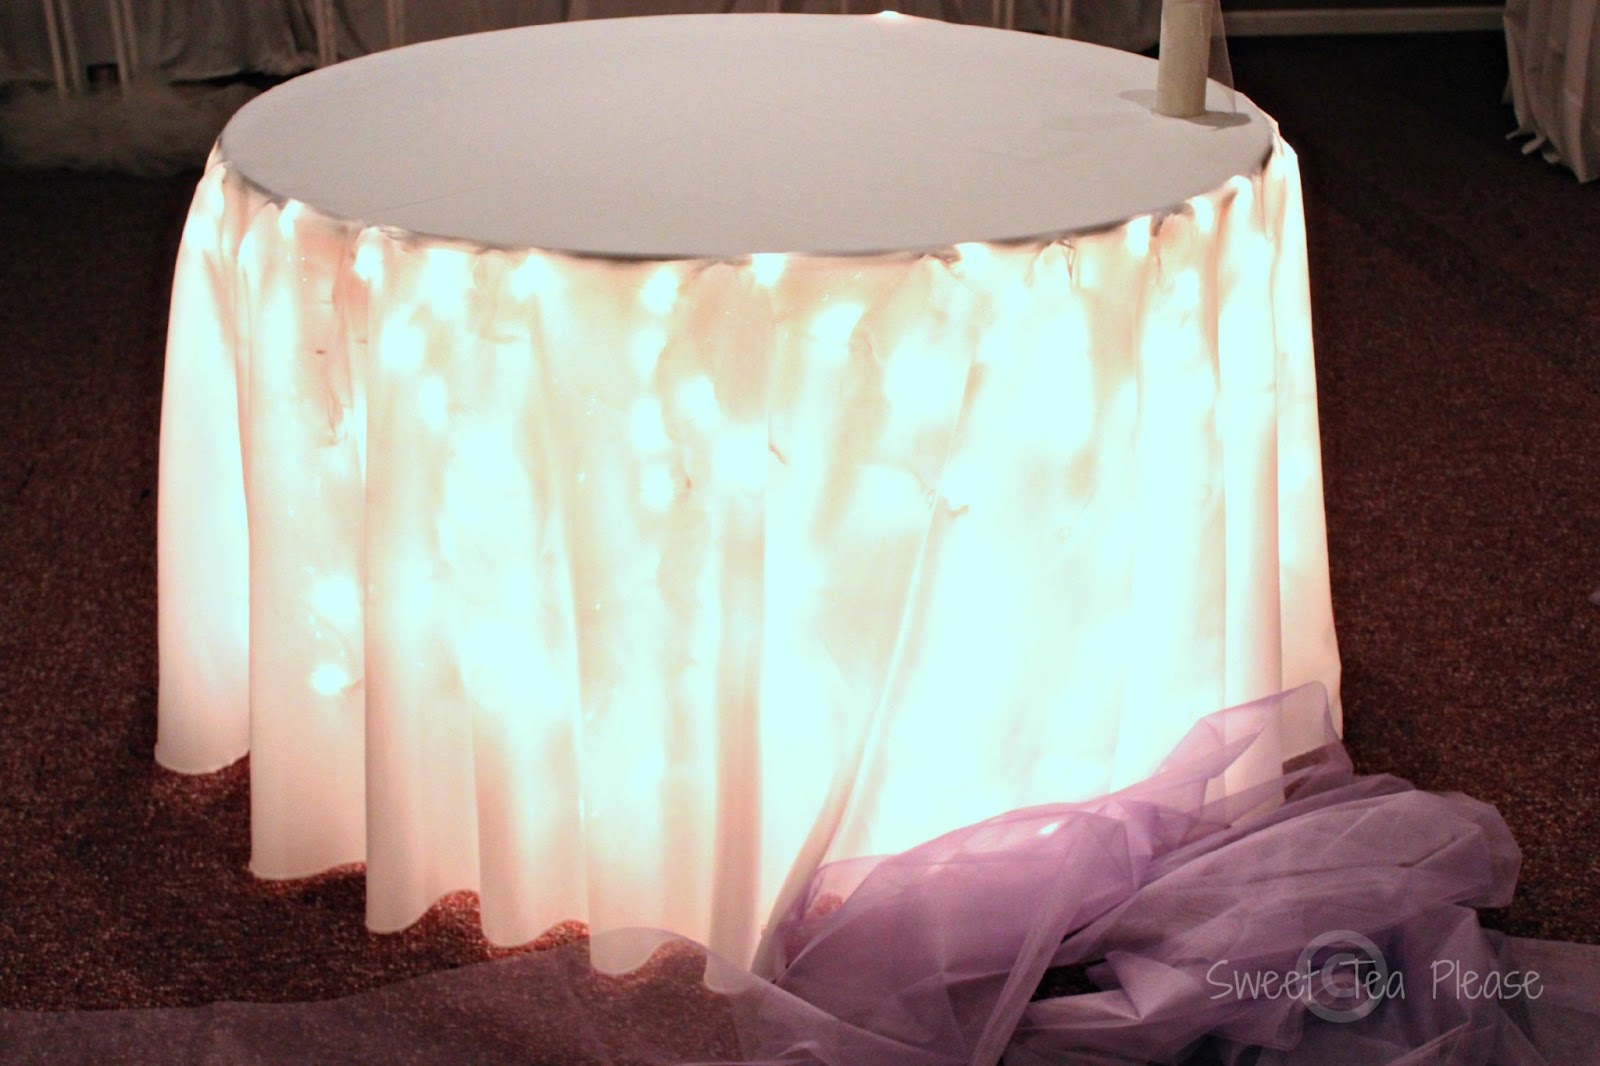 Next We Covered The Table With A White Table Cloth That Reached To The  Floor. The Light Effect This Produced Was Beautiful!